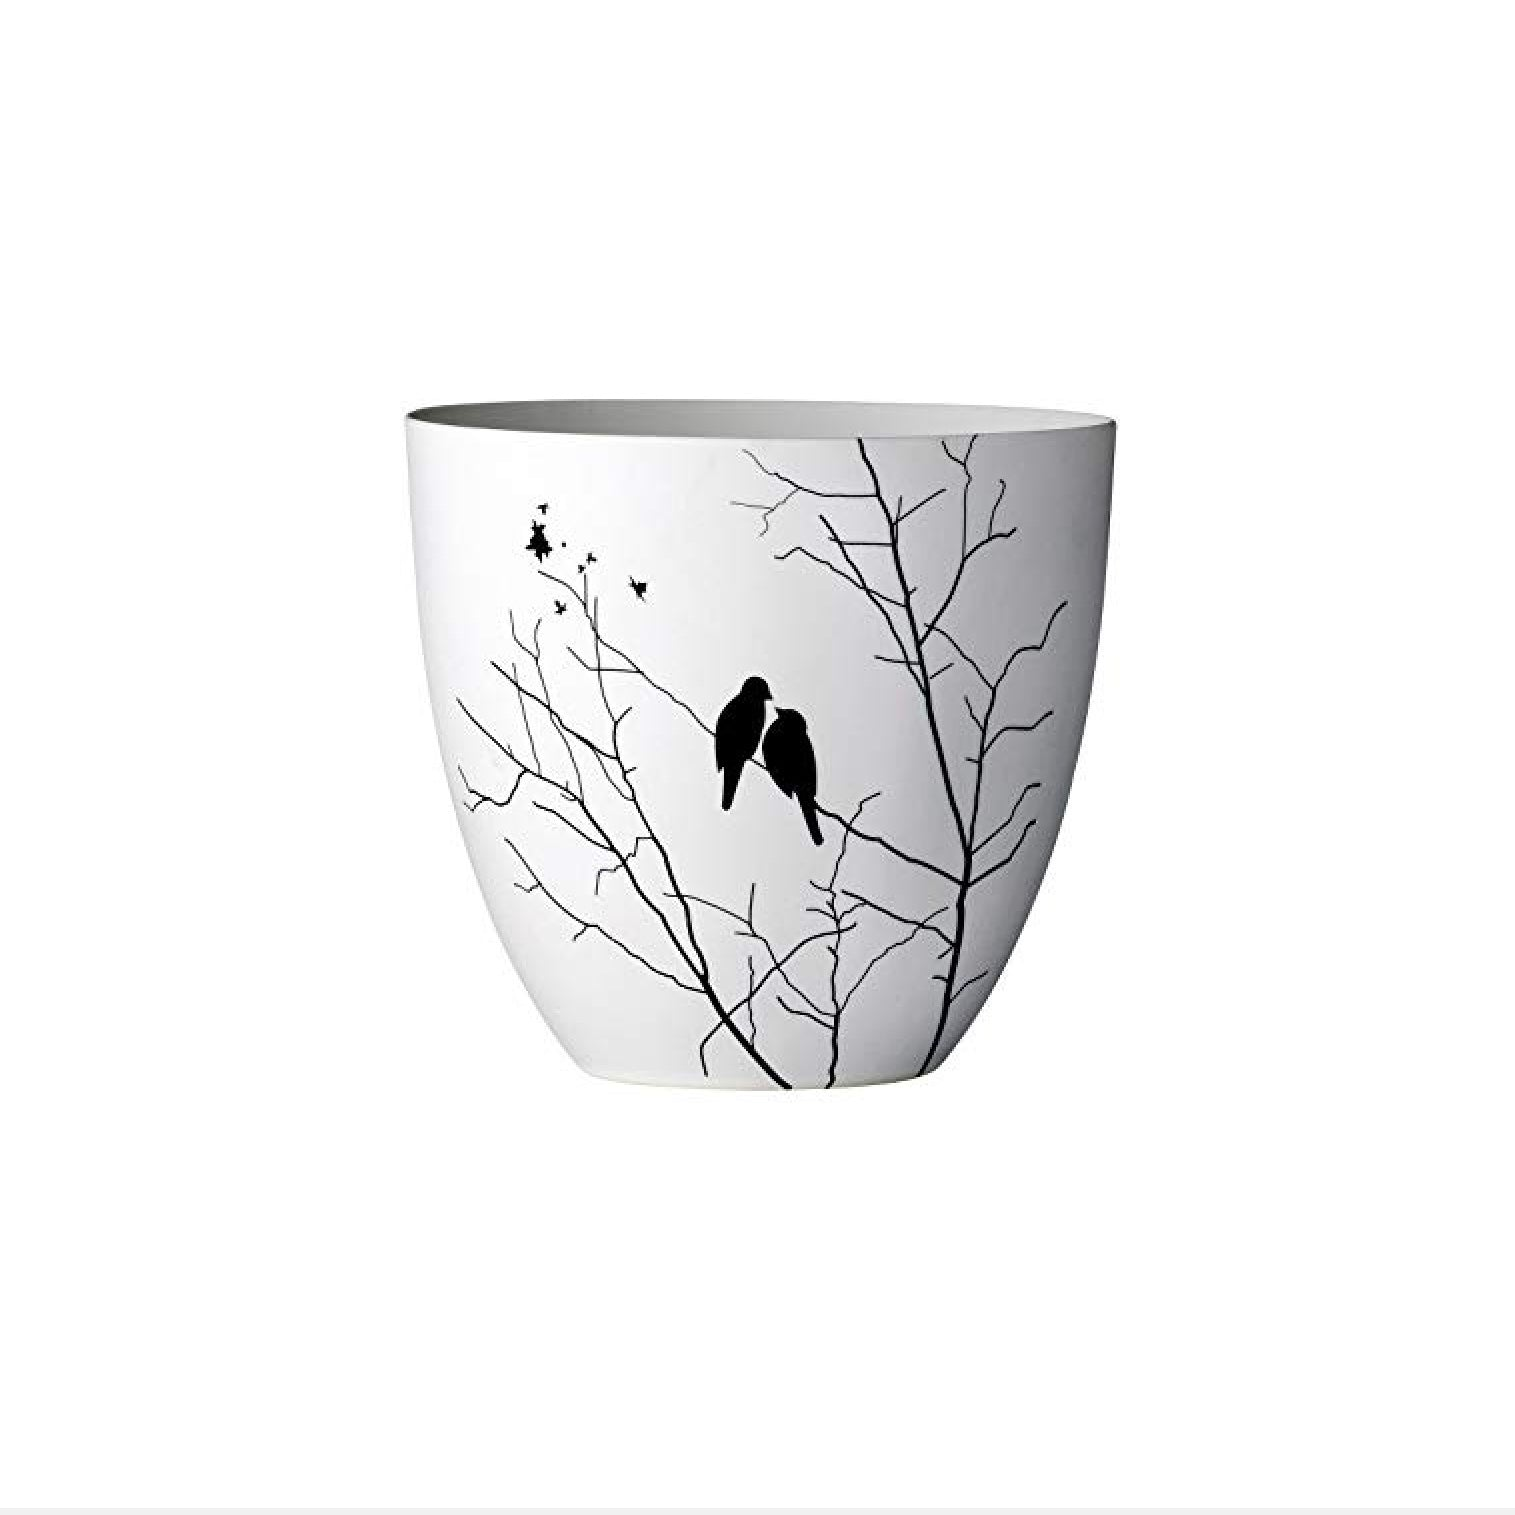 Bloomingville Ceramic Votive Holder with Bird Image